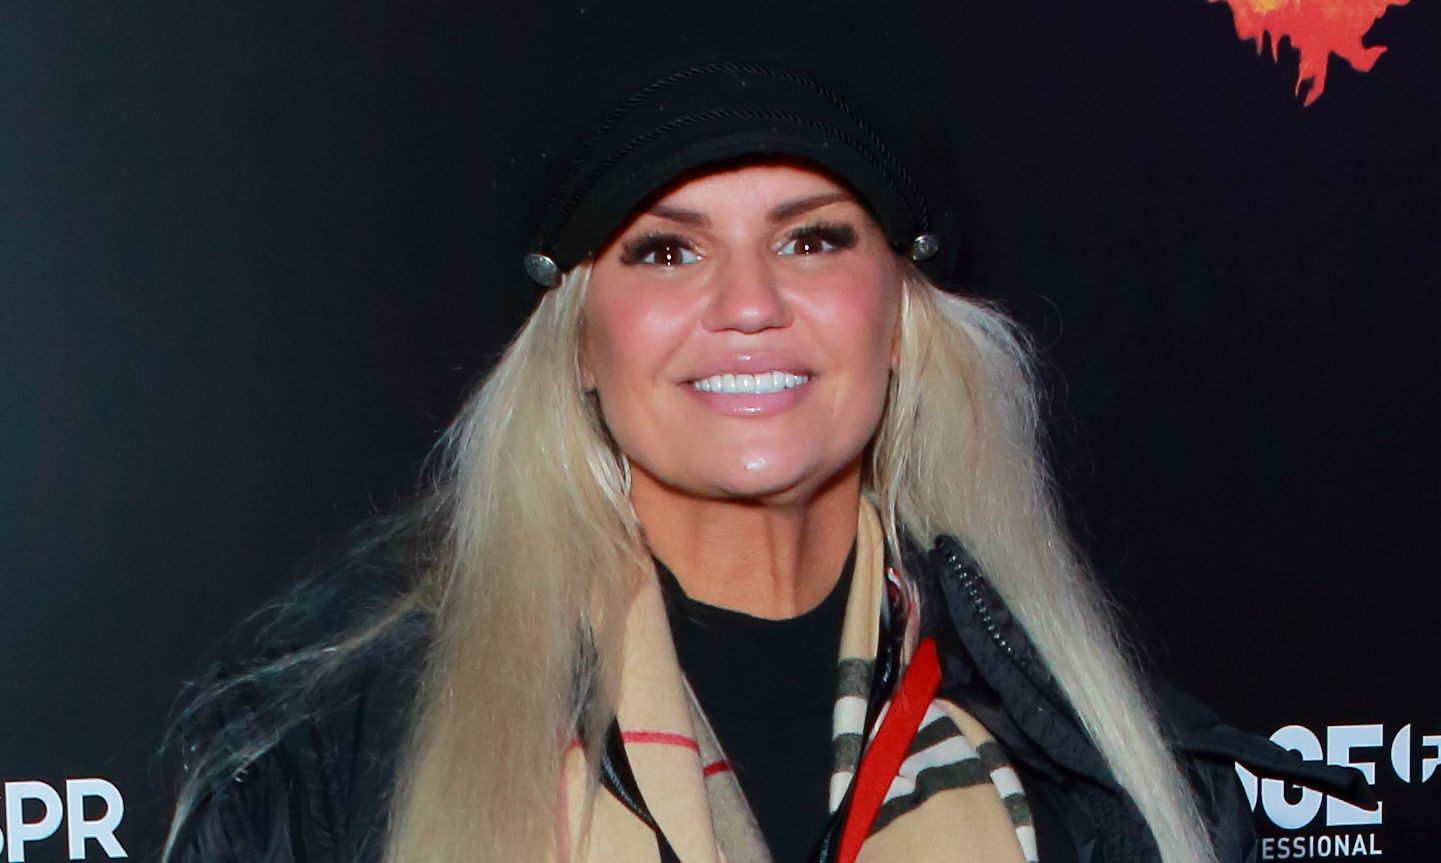 Kerry Katona reveals why she 'doesn't really like' New Year's Eve